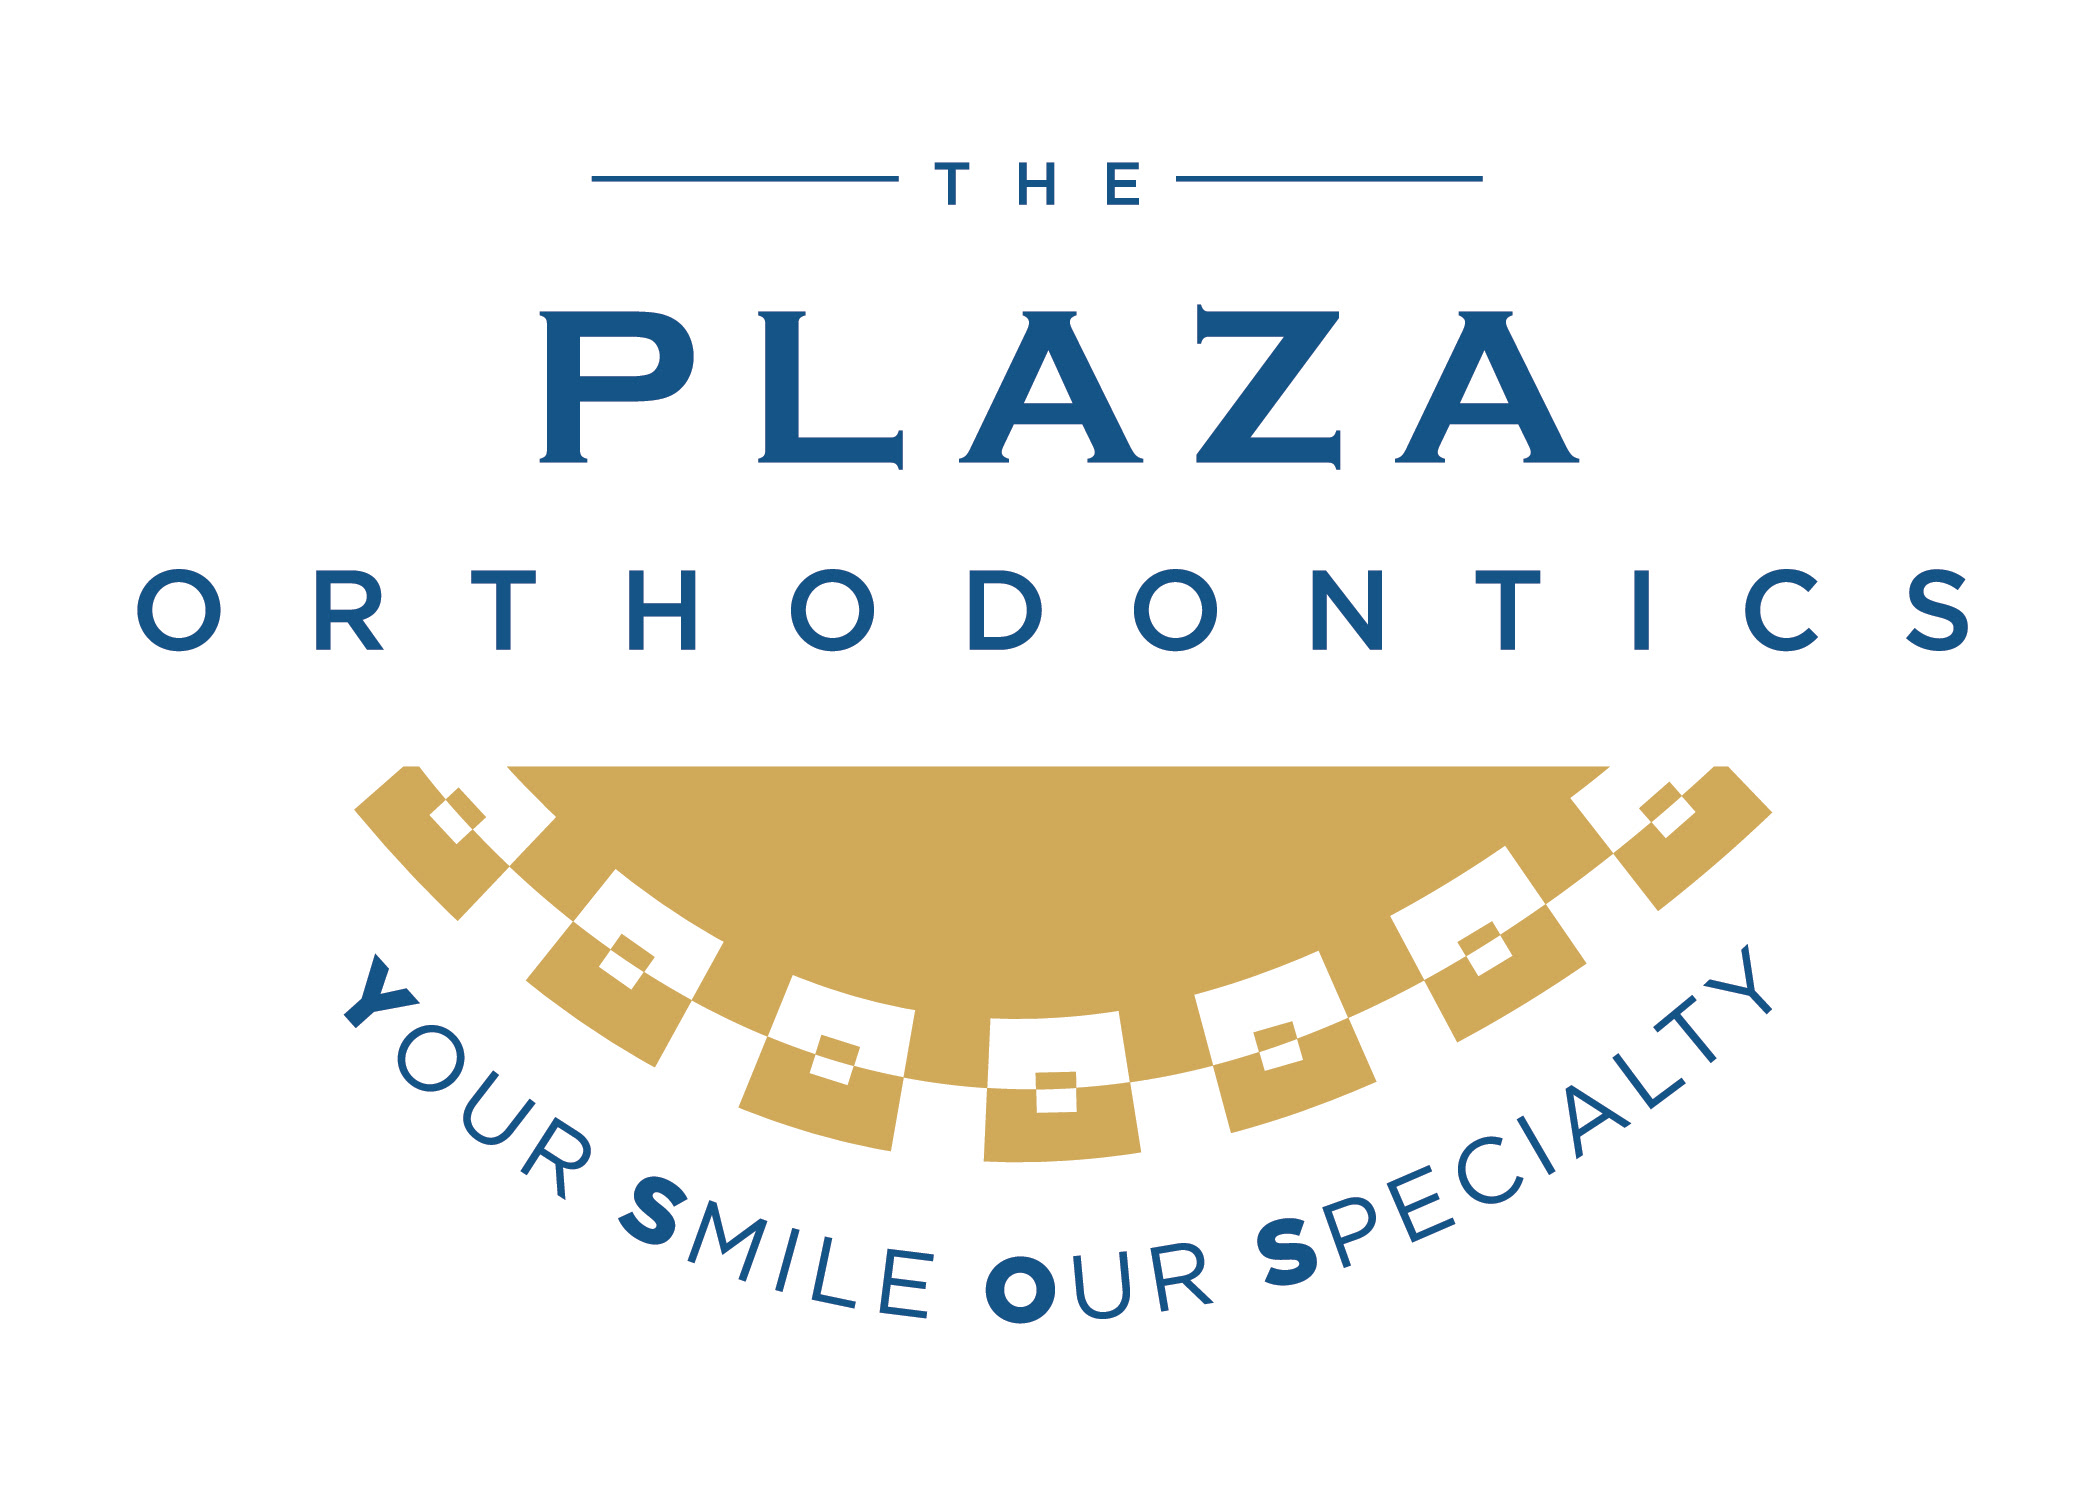 Plaza Orthodontics